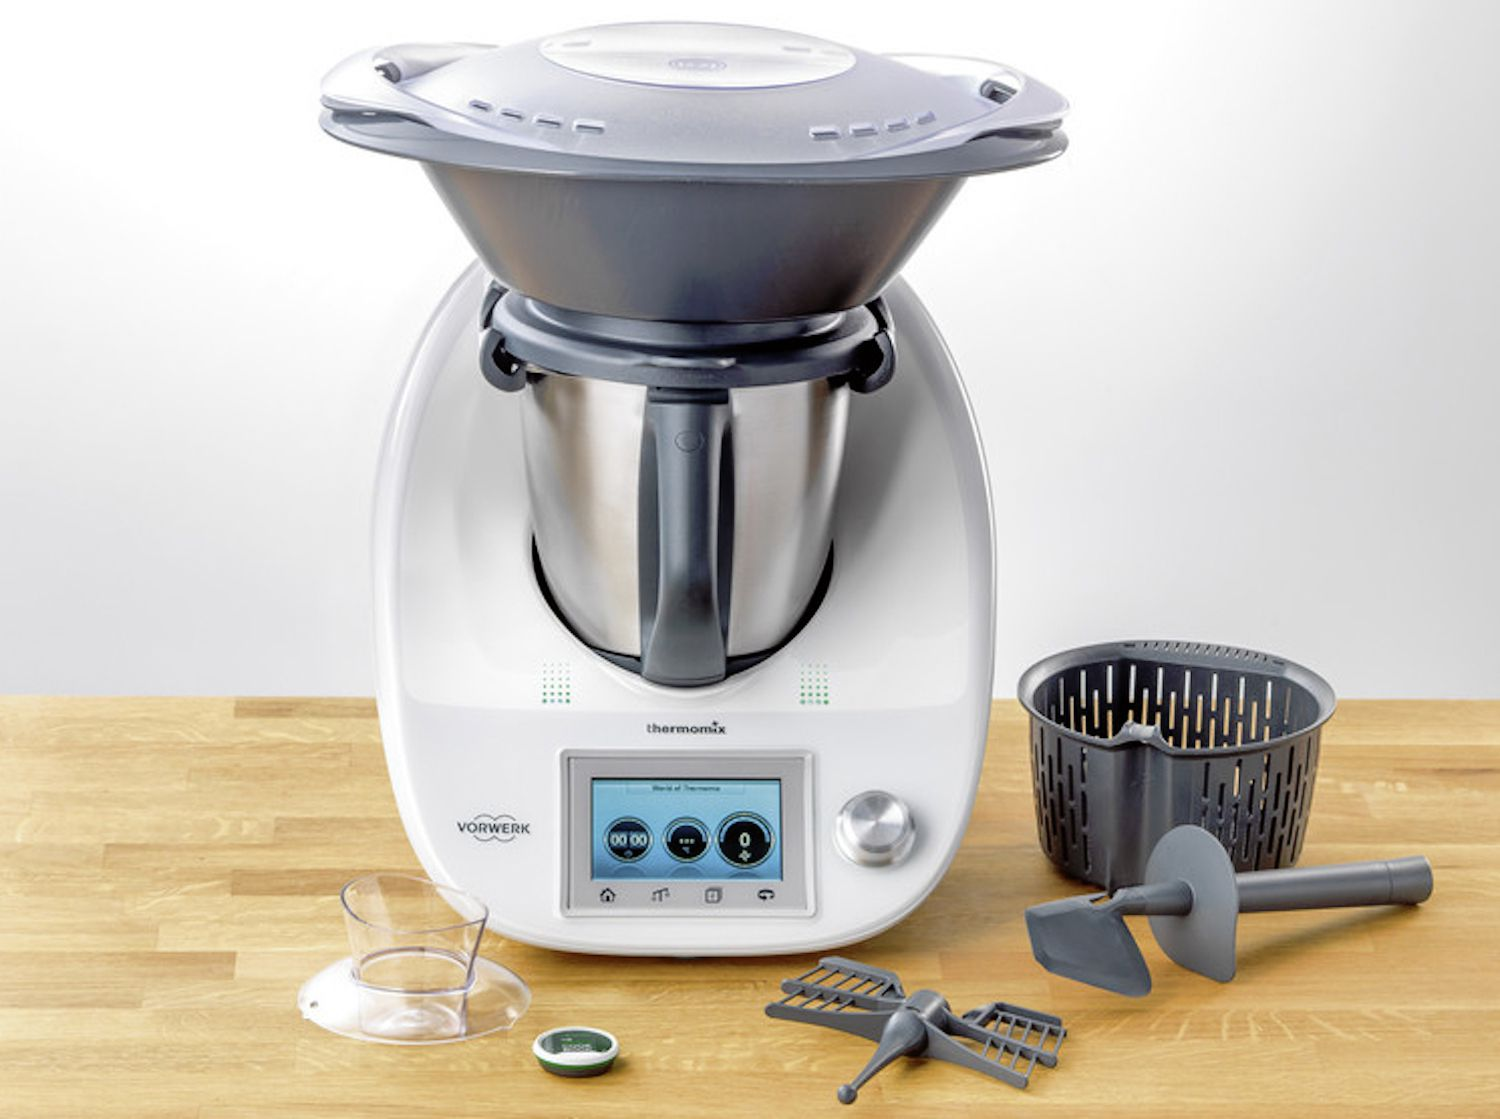 bimby kitchen robot white chandelier is a thermomix worth the price